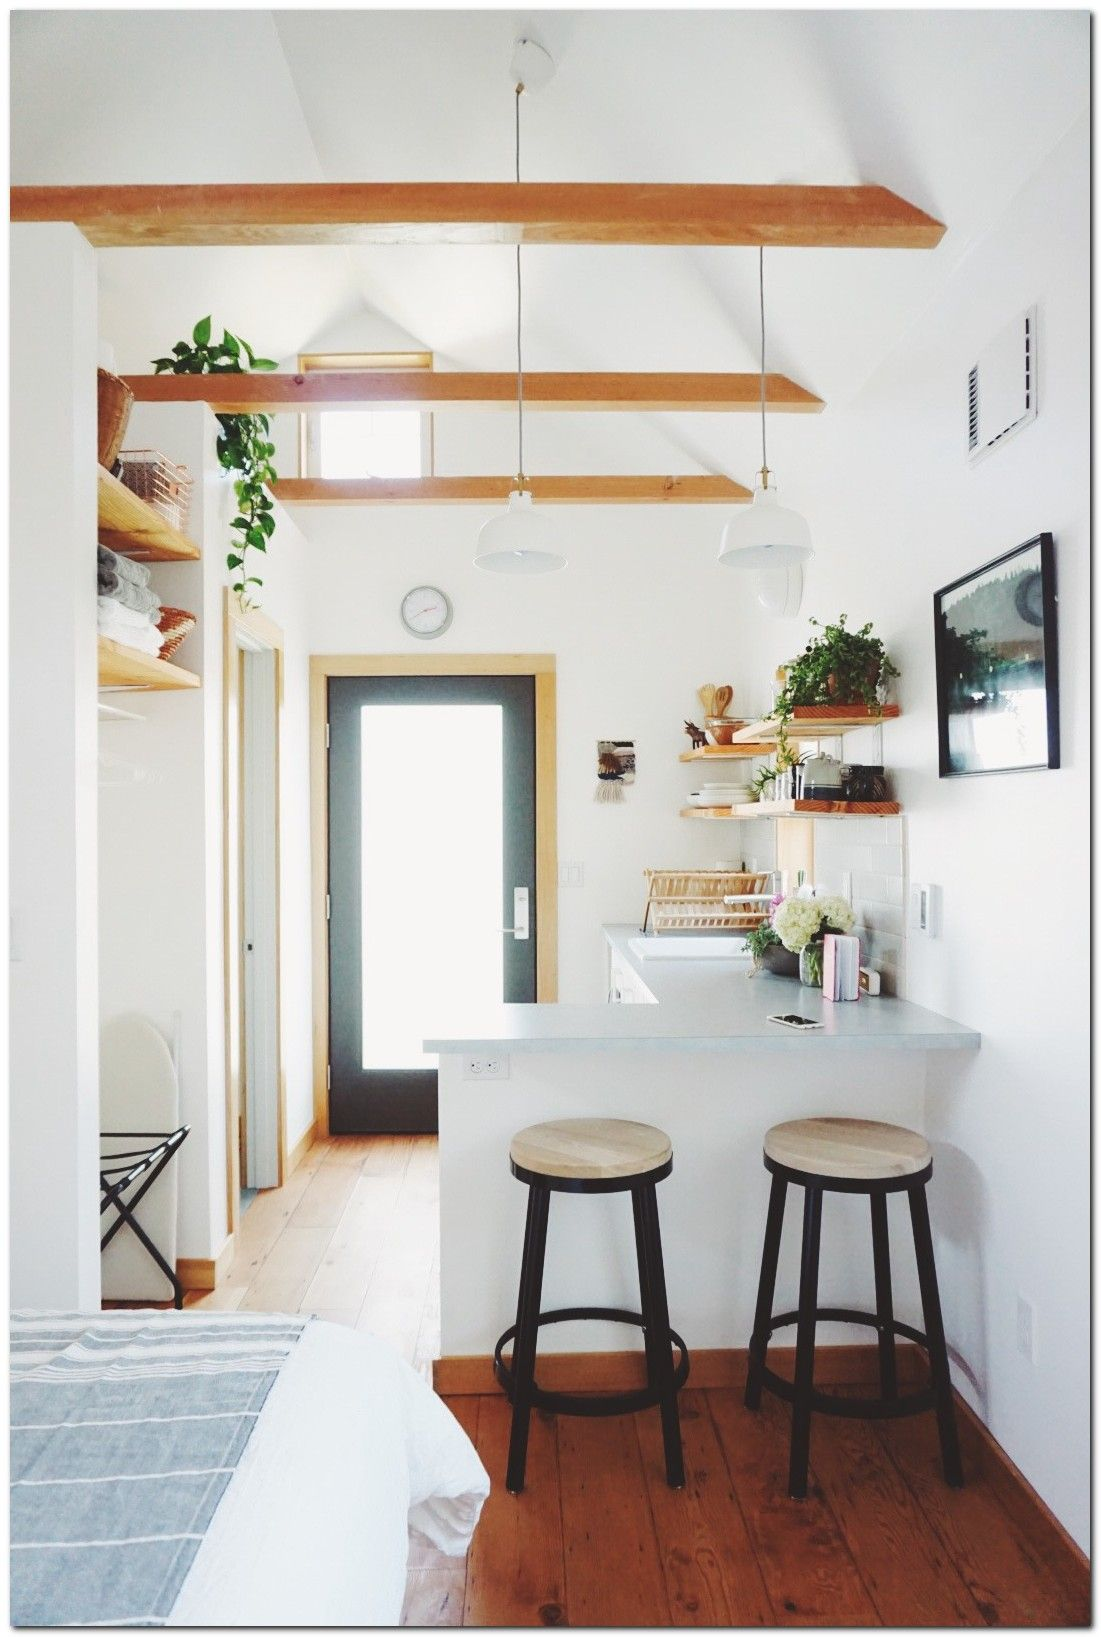 100+ Smart Ideas to Add More Seating to Small House | Smallest house ...